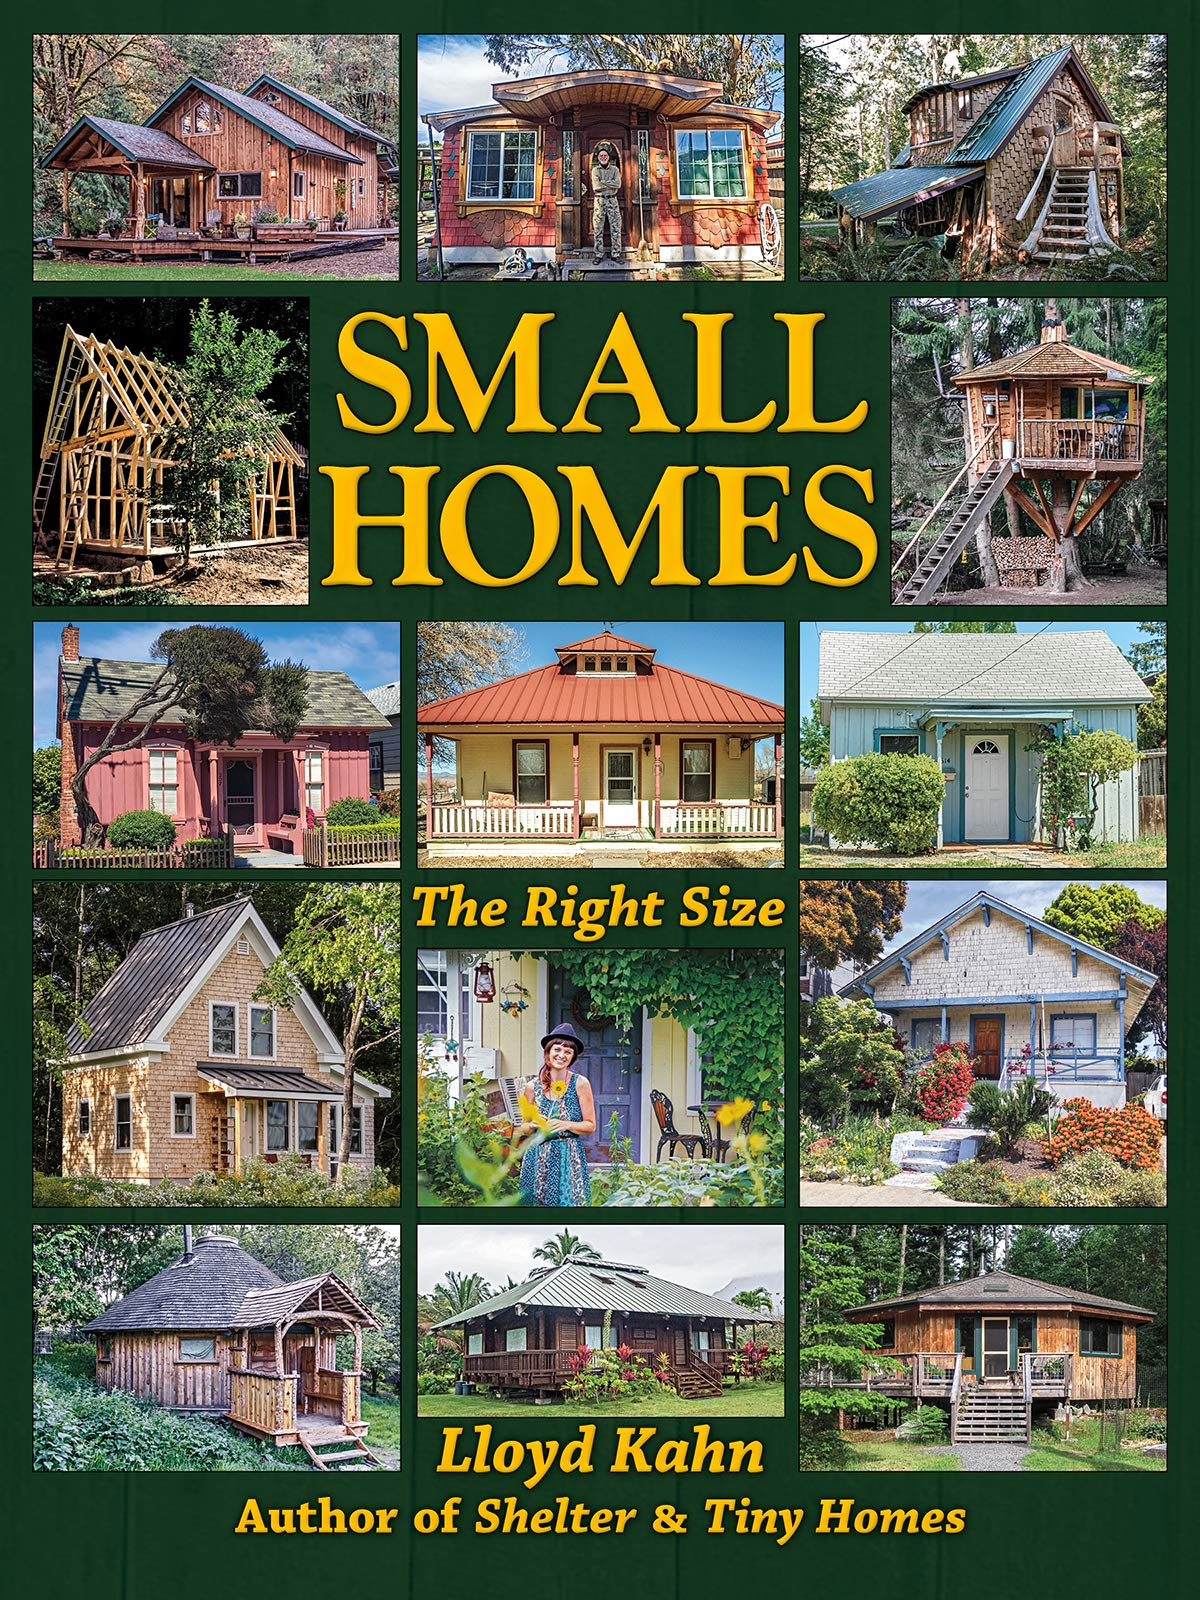 Small Homes  The Right Size  The Shelter Library Of Building Books Band 7